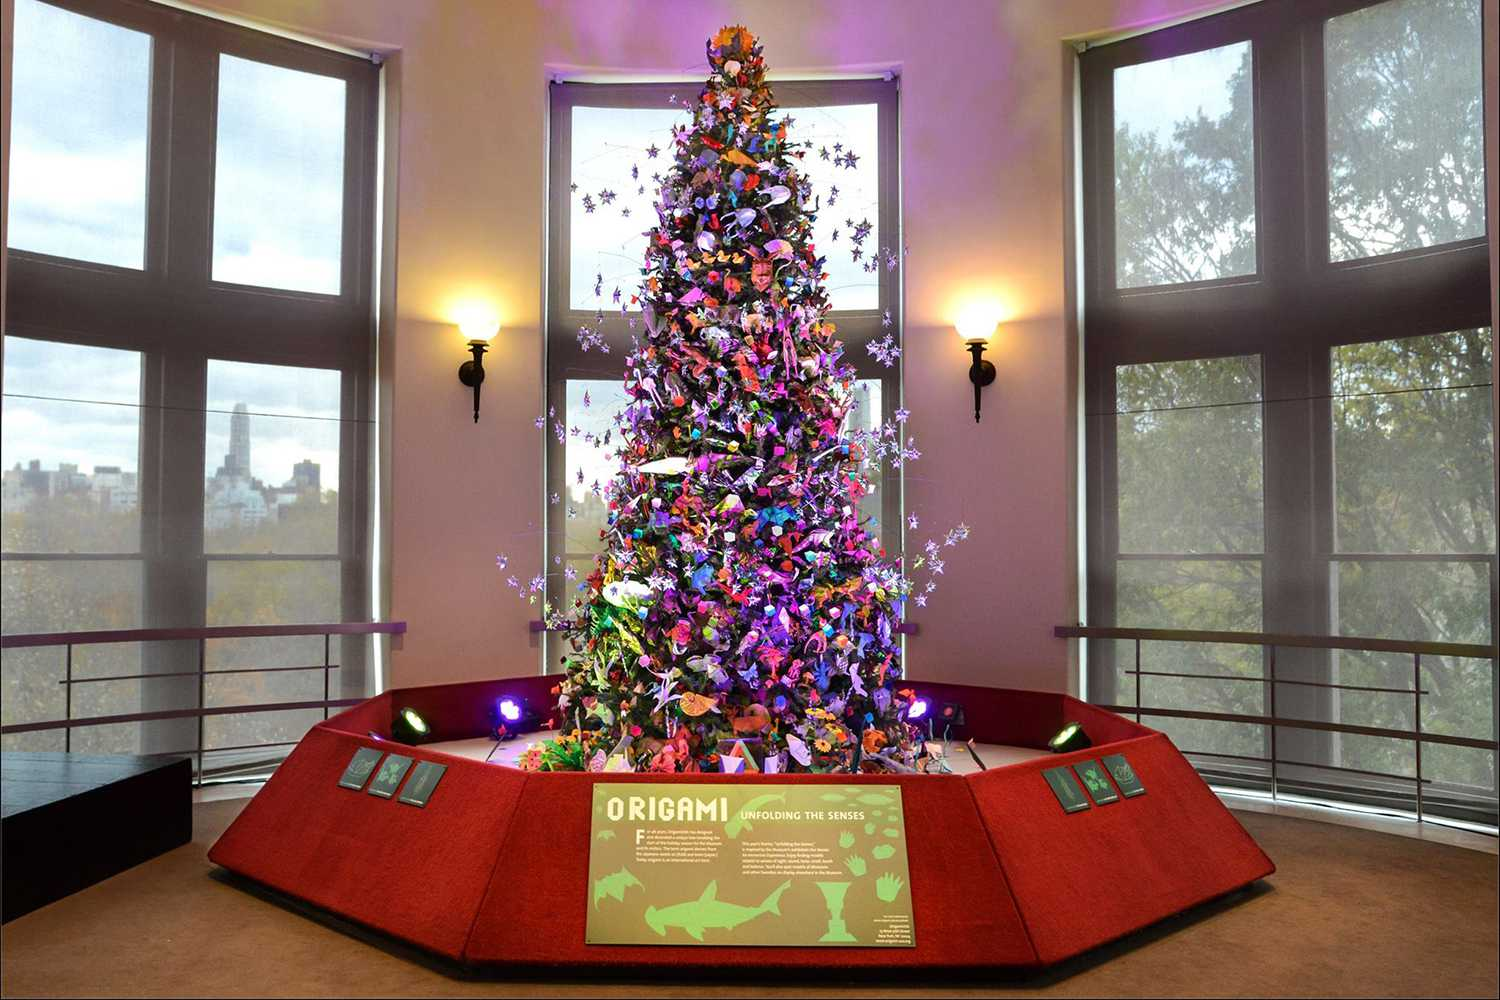 Best Christmas Trees.Best Christmas Trees To See In Nyc